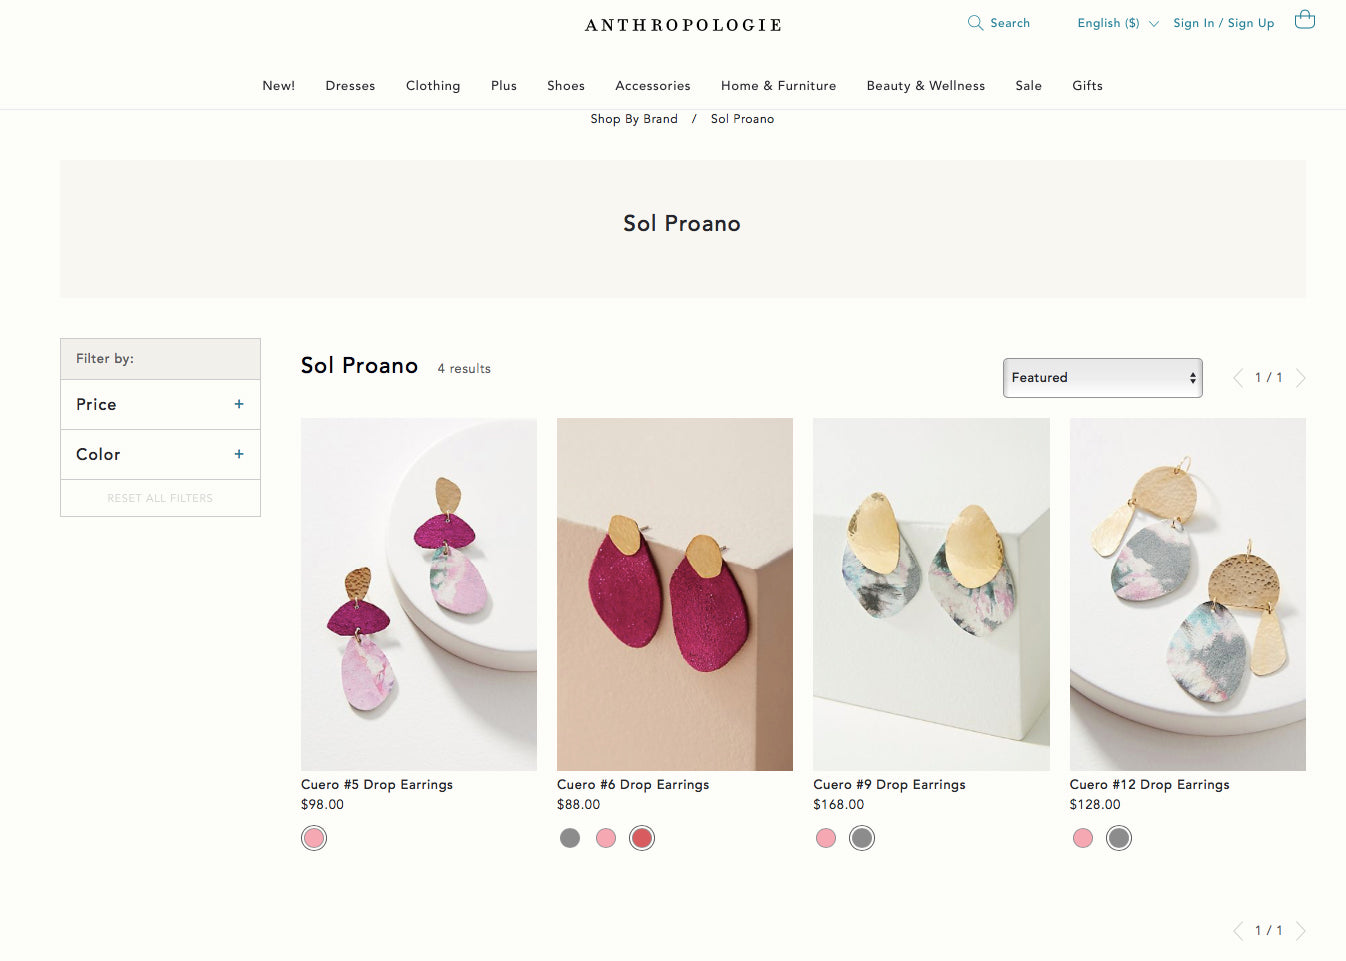 Anthropologie - Sol Proano jewelry screenshot